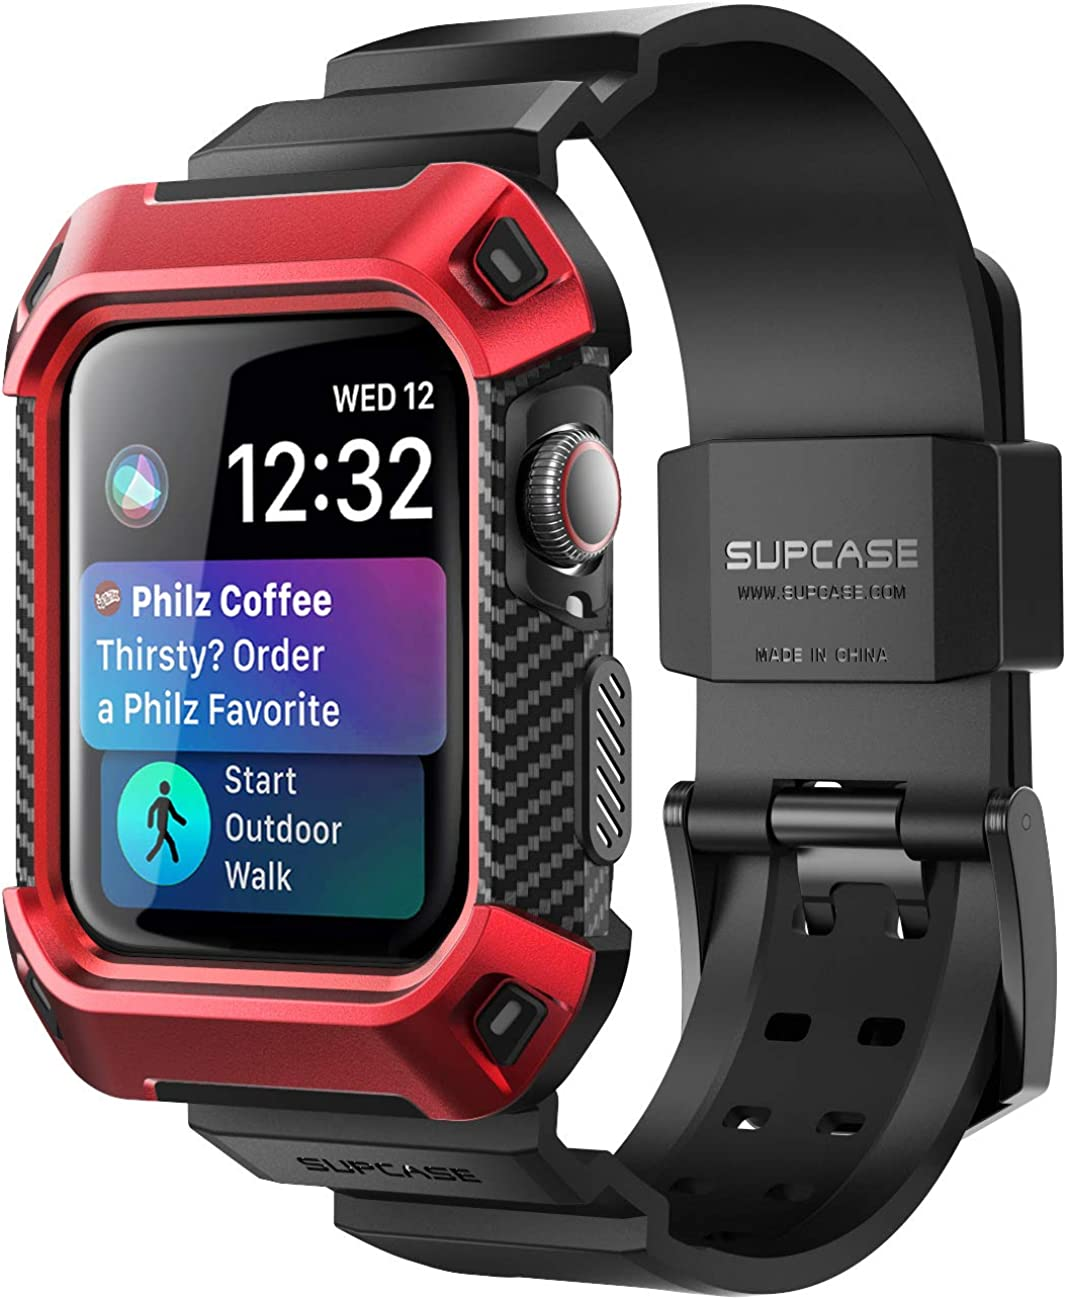 SUPCASE [Unicorn Beetle Pro] Designed for Apple Watch Series 6/SE/5/4 [40mm], Rugged Protective Case with Strap Bands